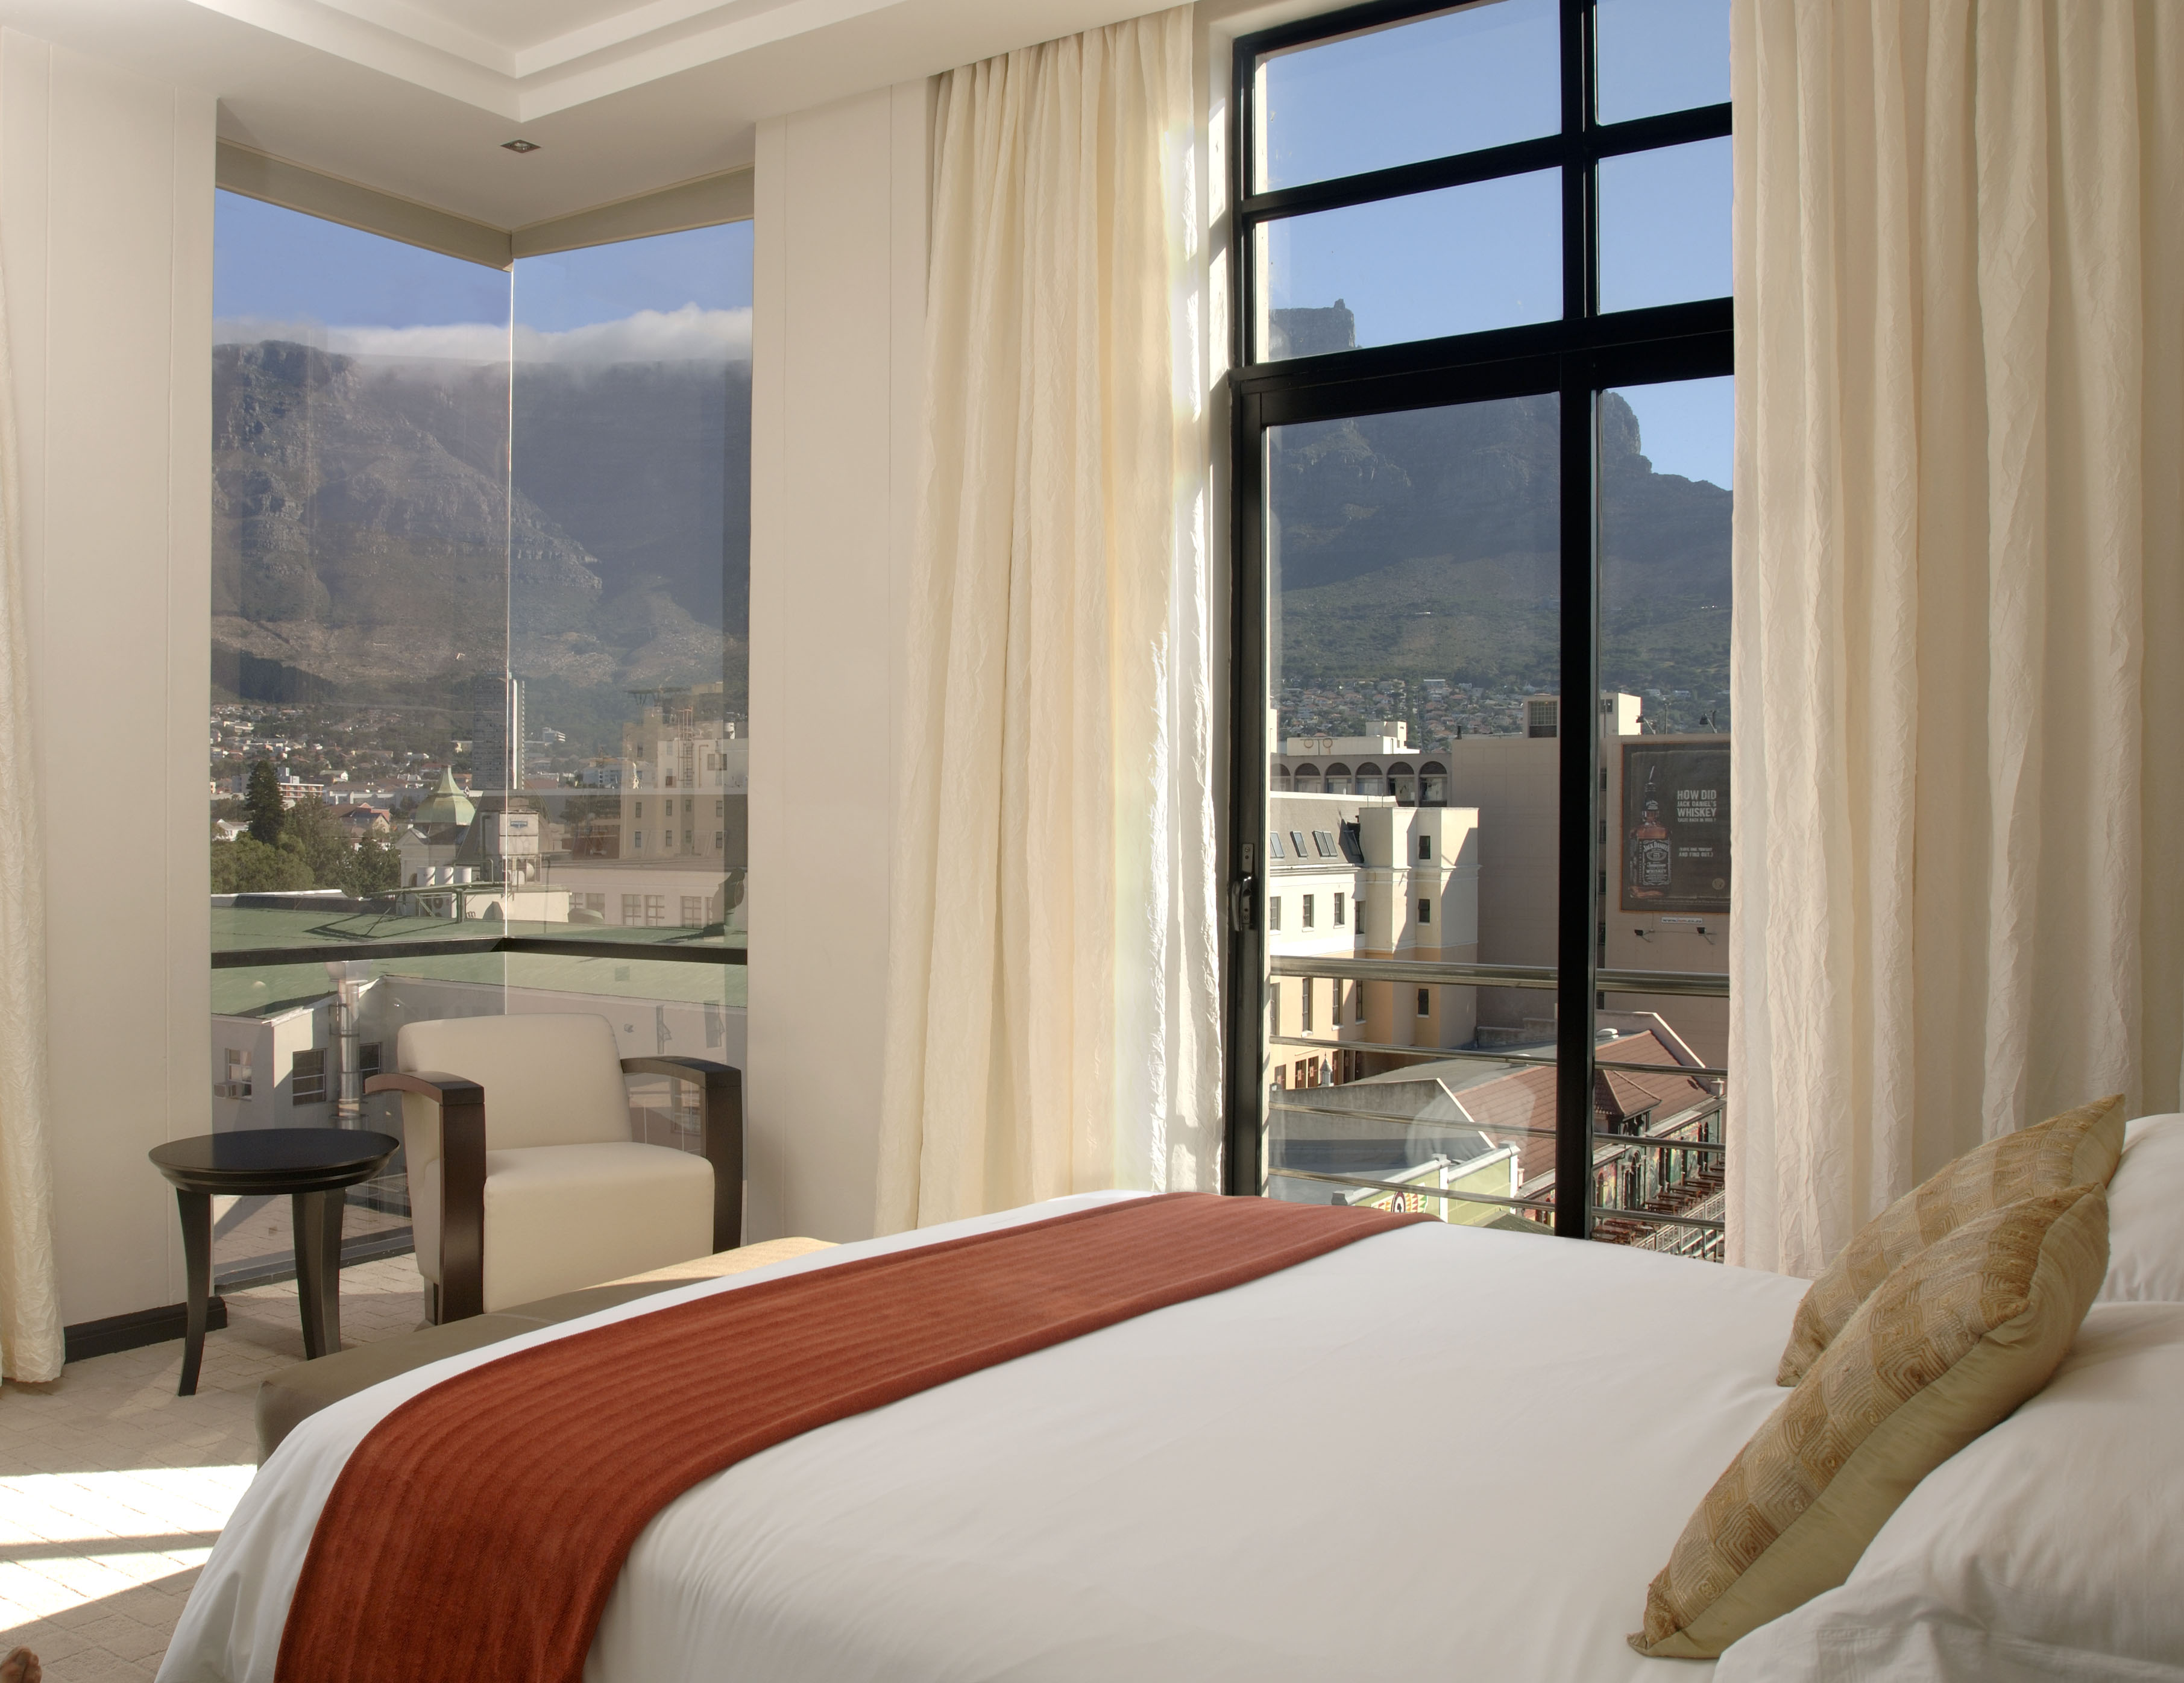 Cape stay blog cape town accommodation capestay guide for Boutique hotel